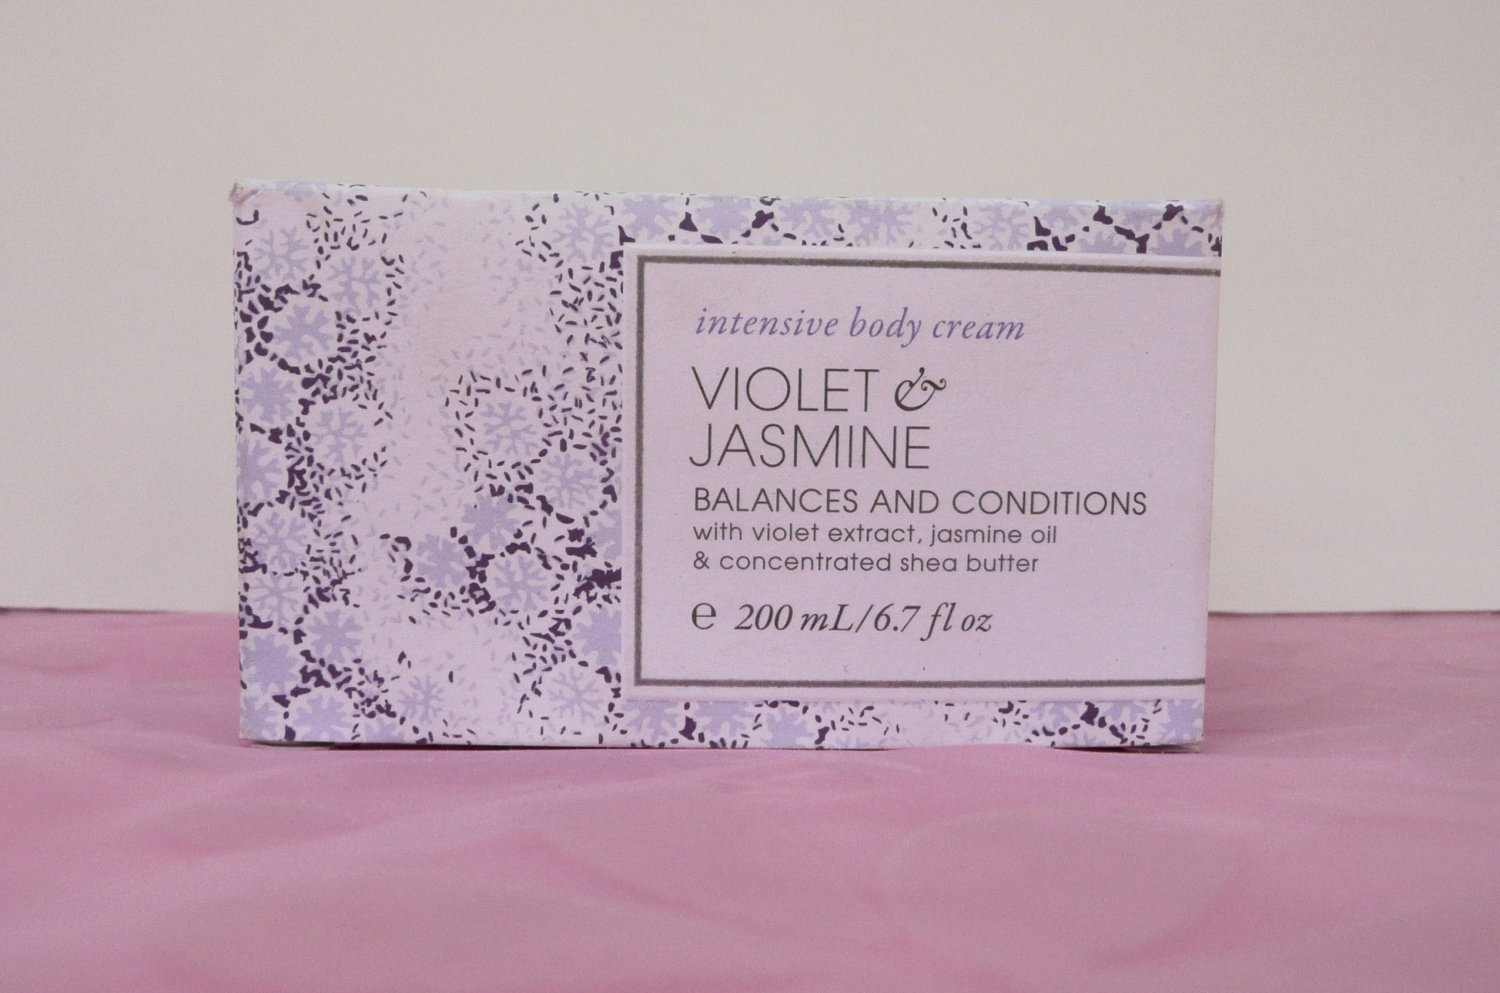 Victoria's Secret Violet and Jasmine Intensive Body Cream.